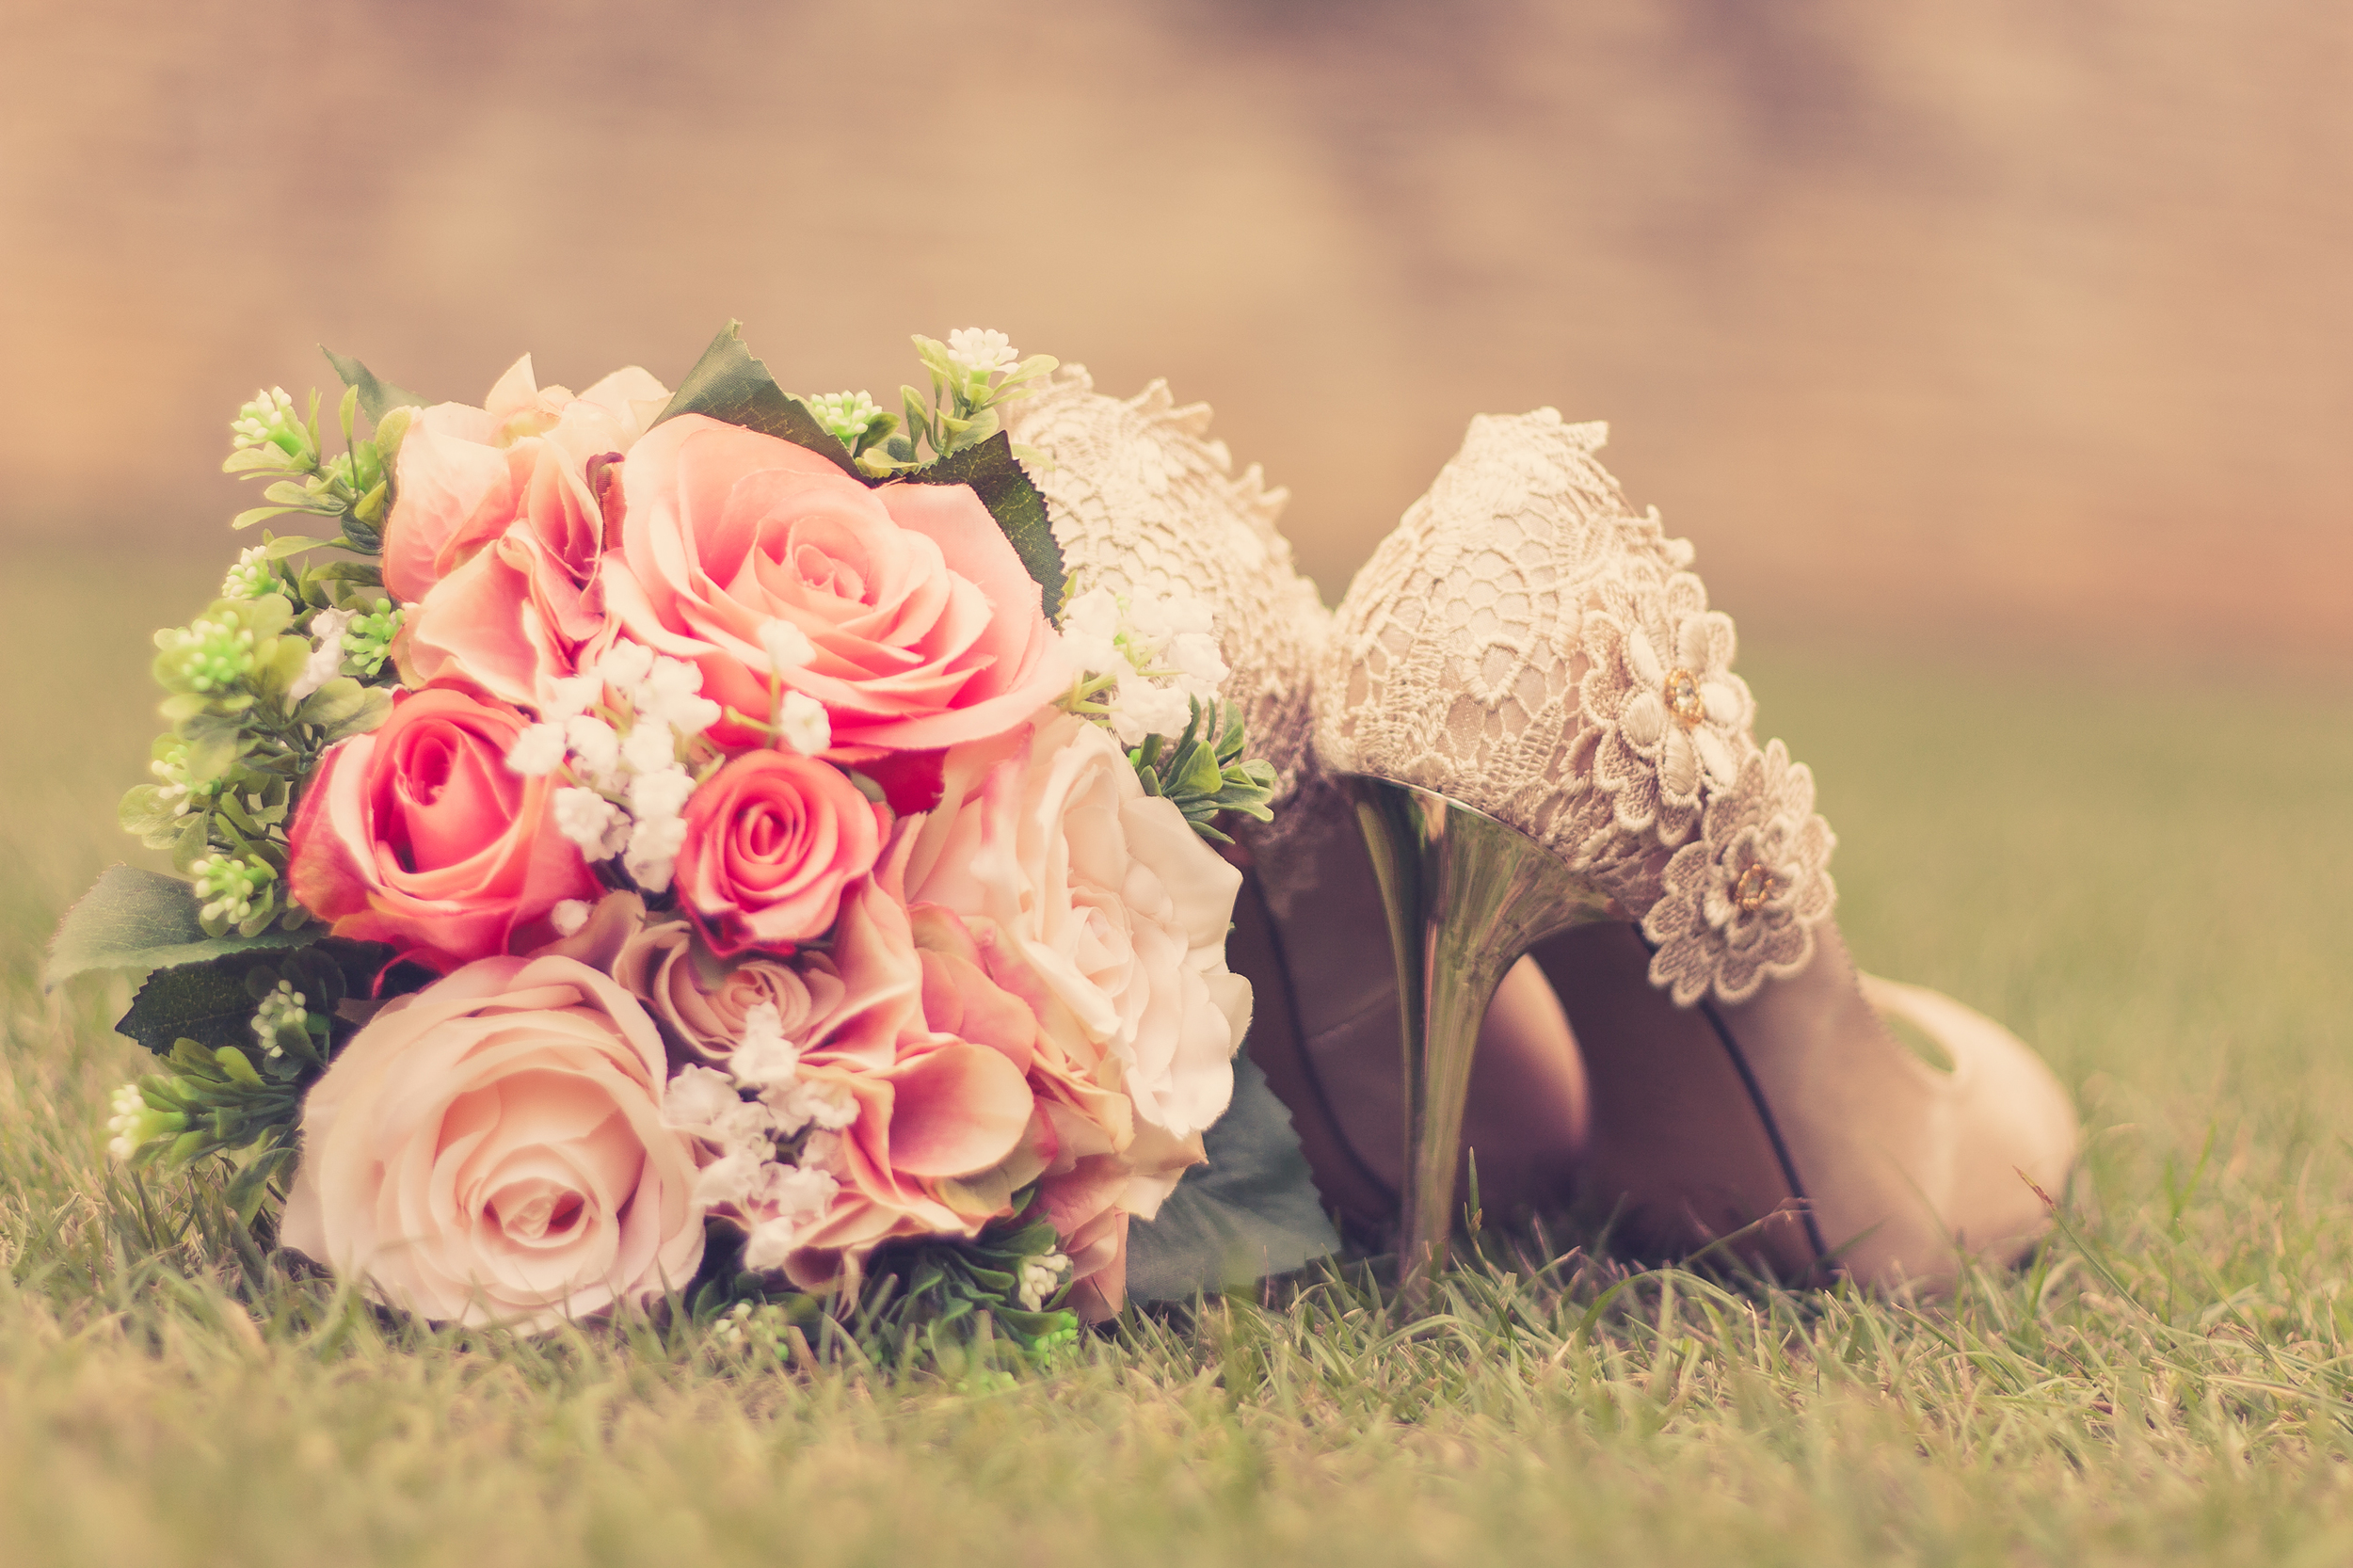 Brides lovely shoes and bouquet